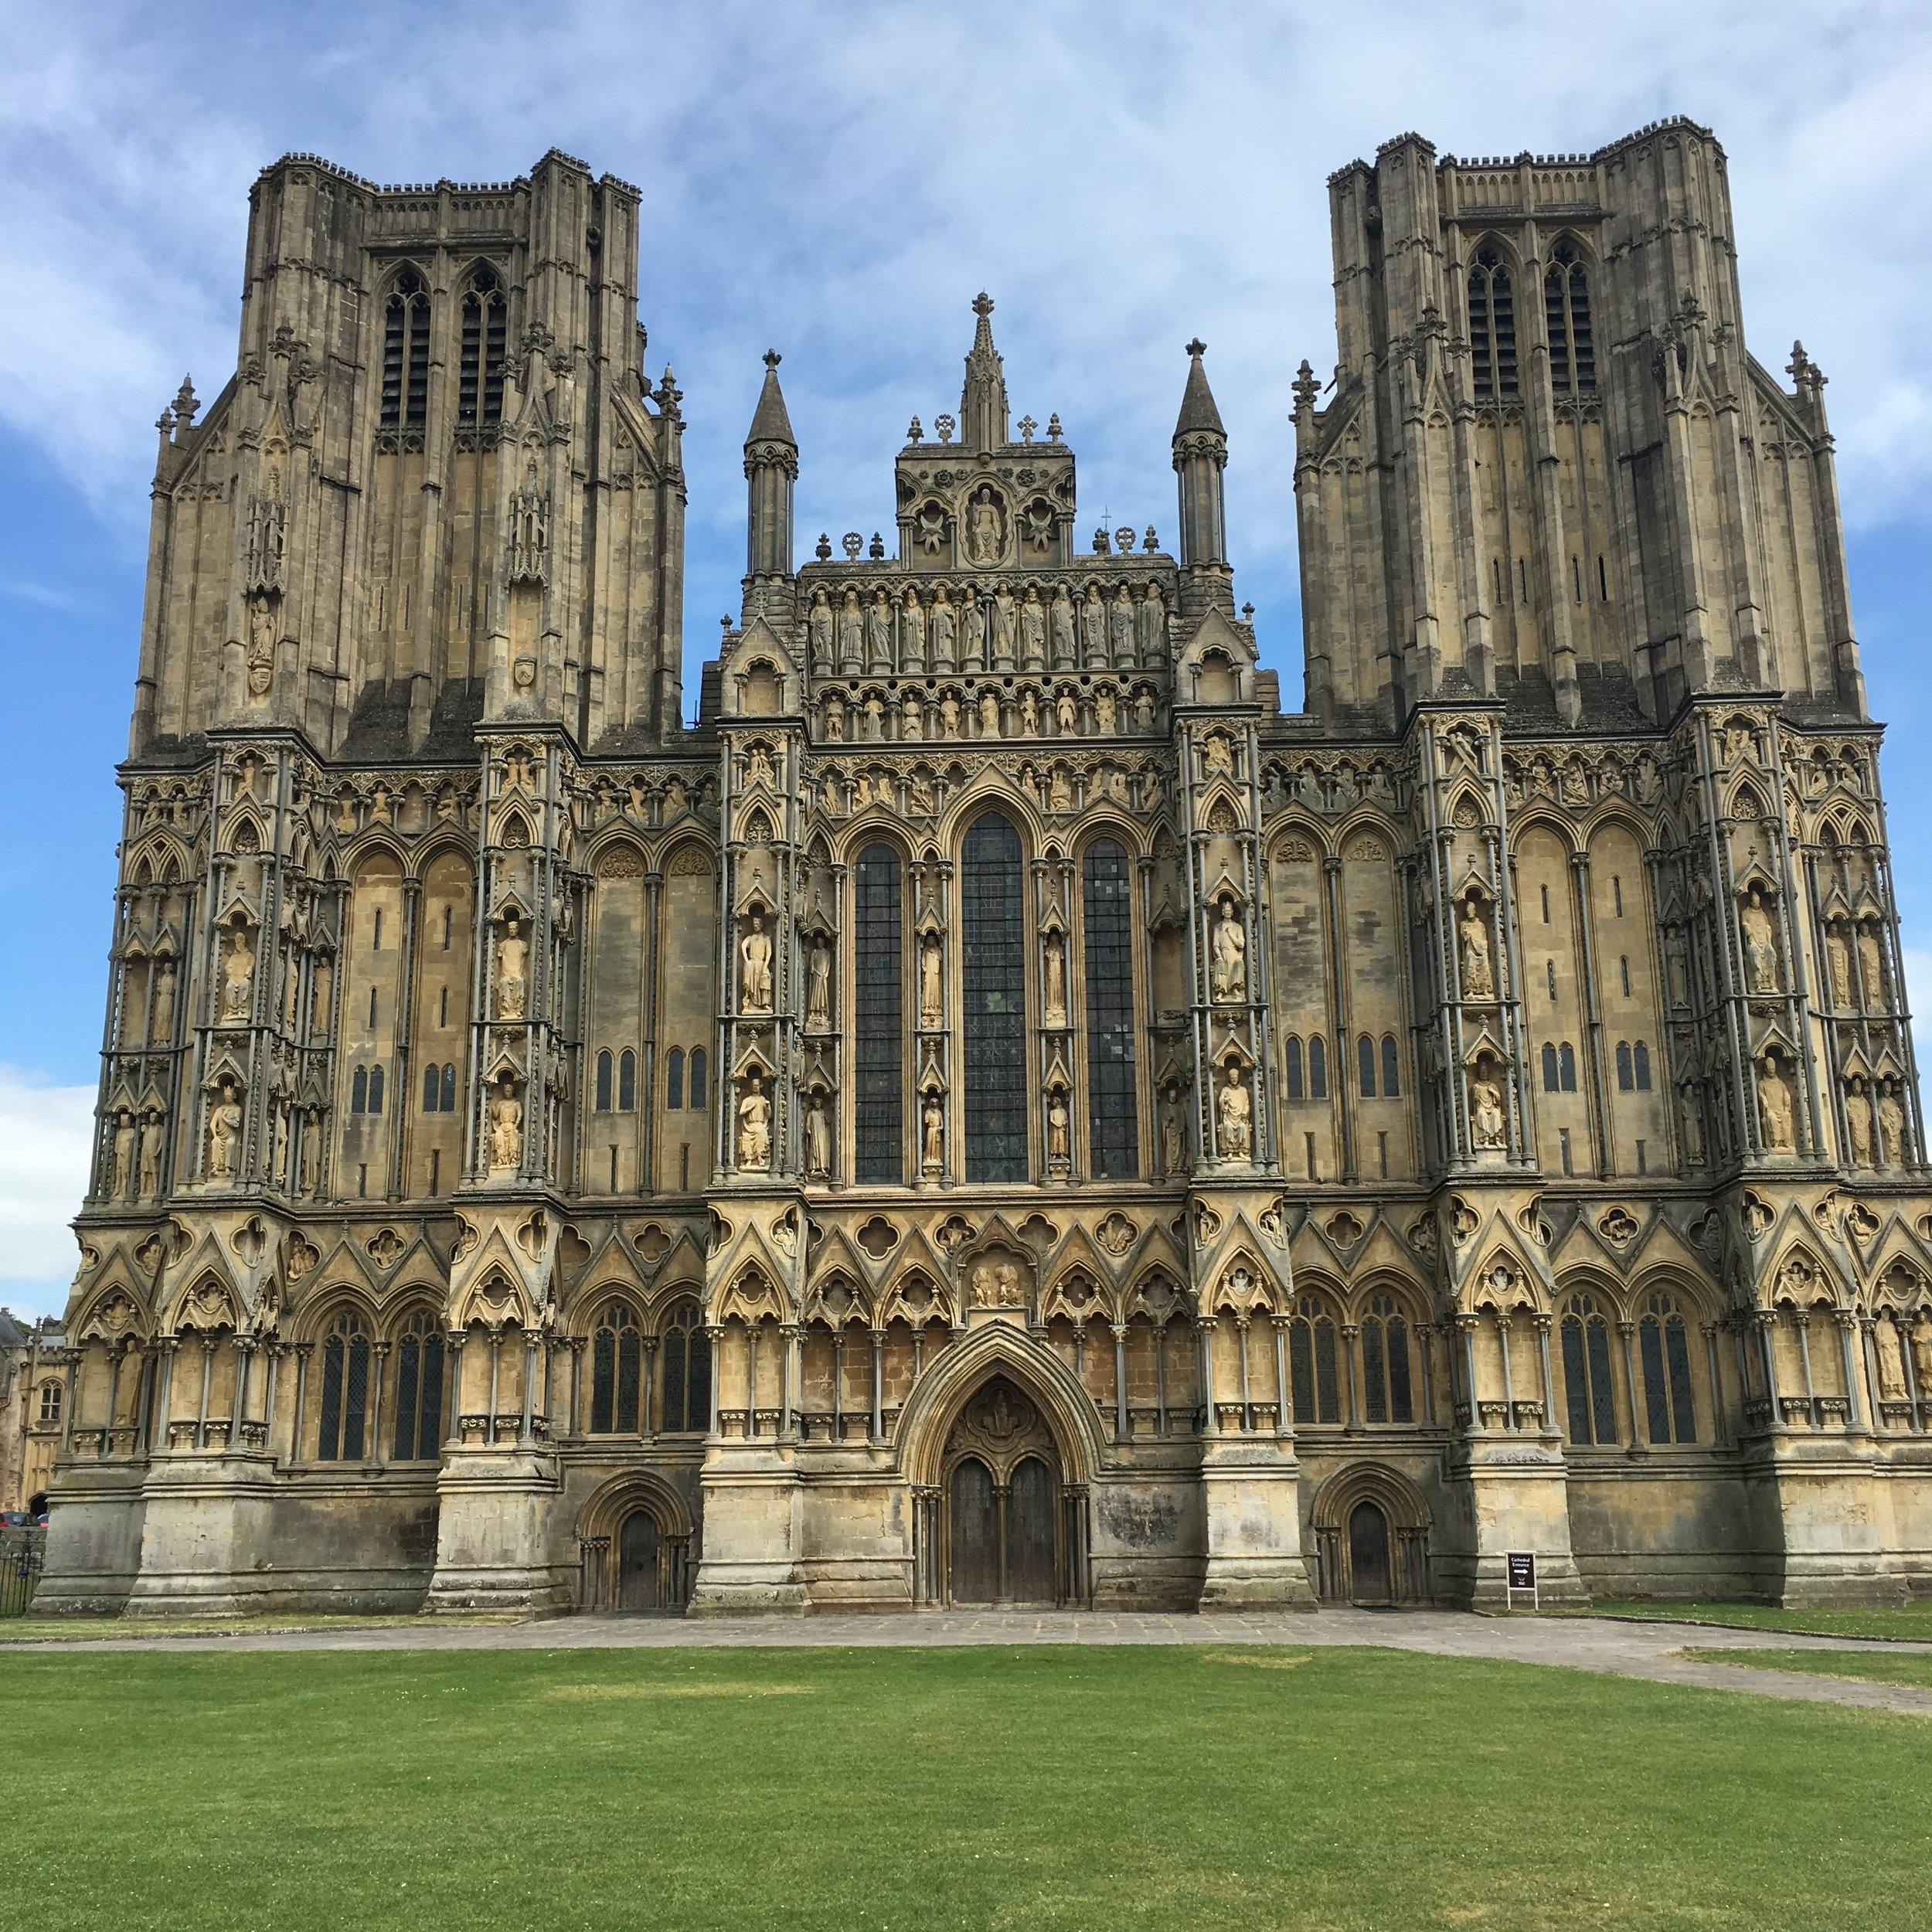 The massive cathedral in the town of Wells.